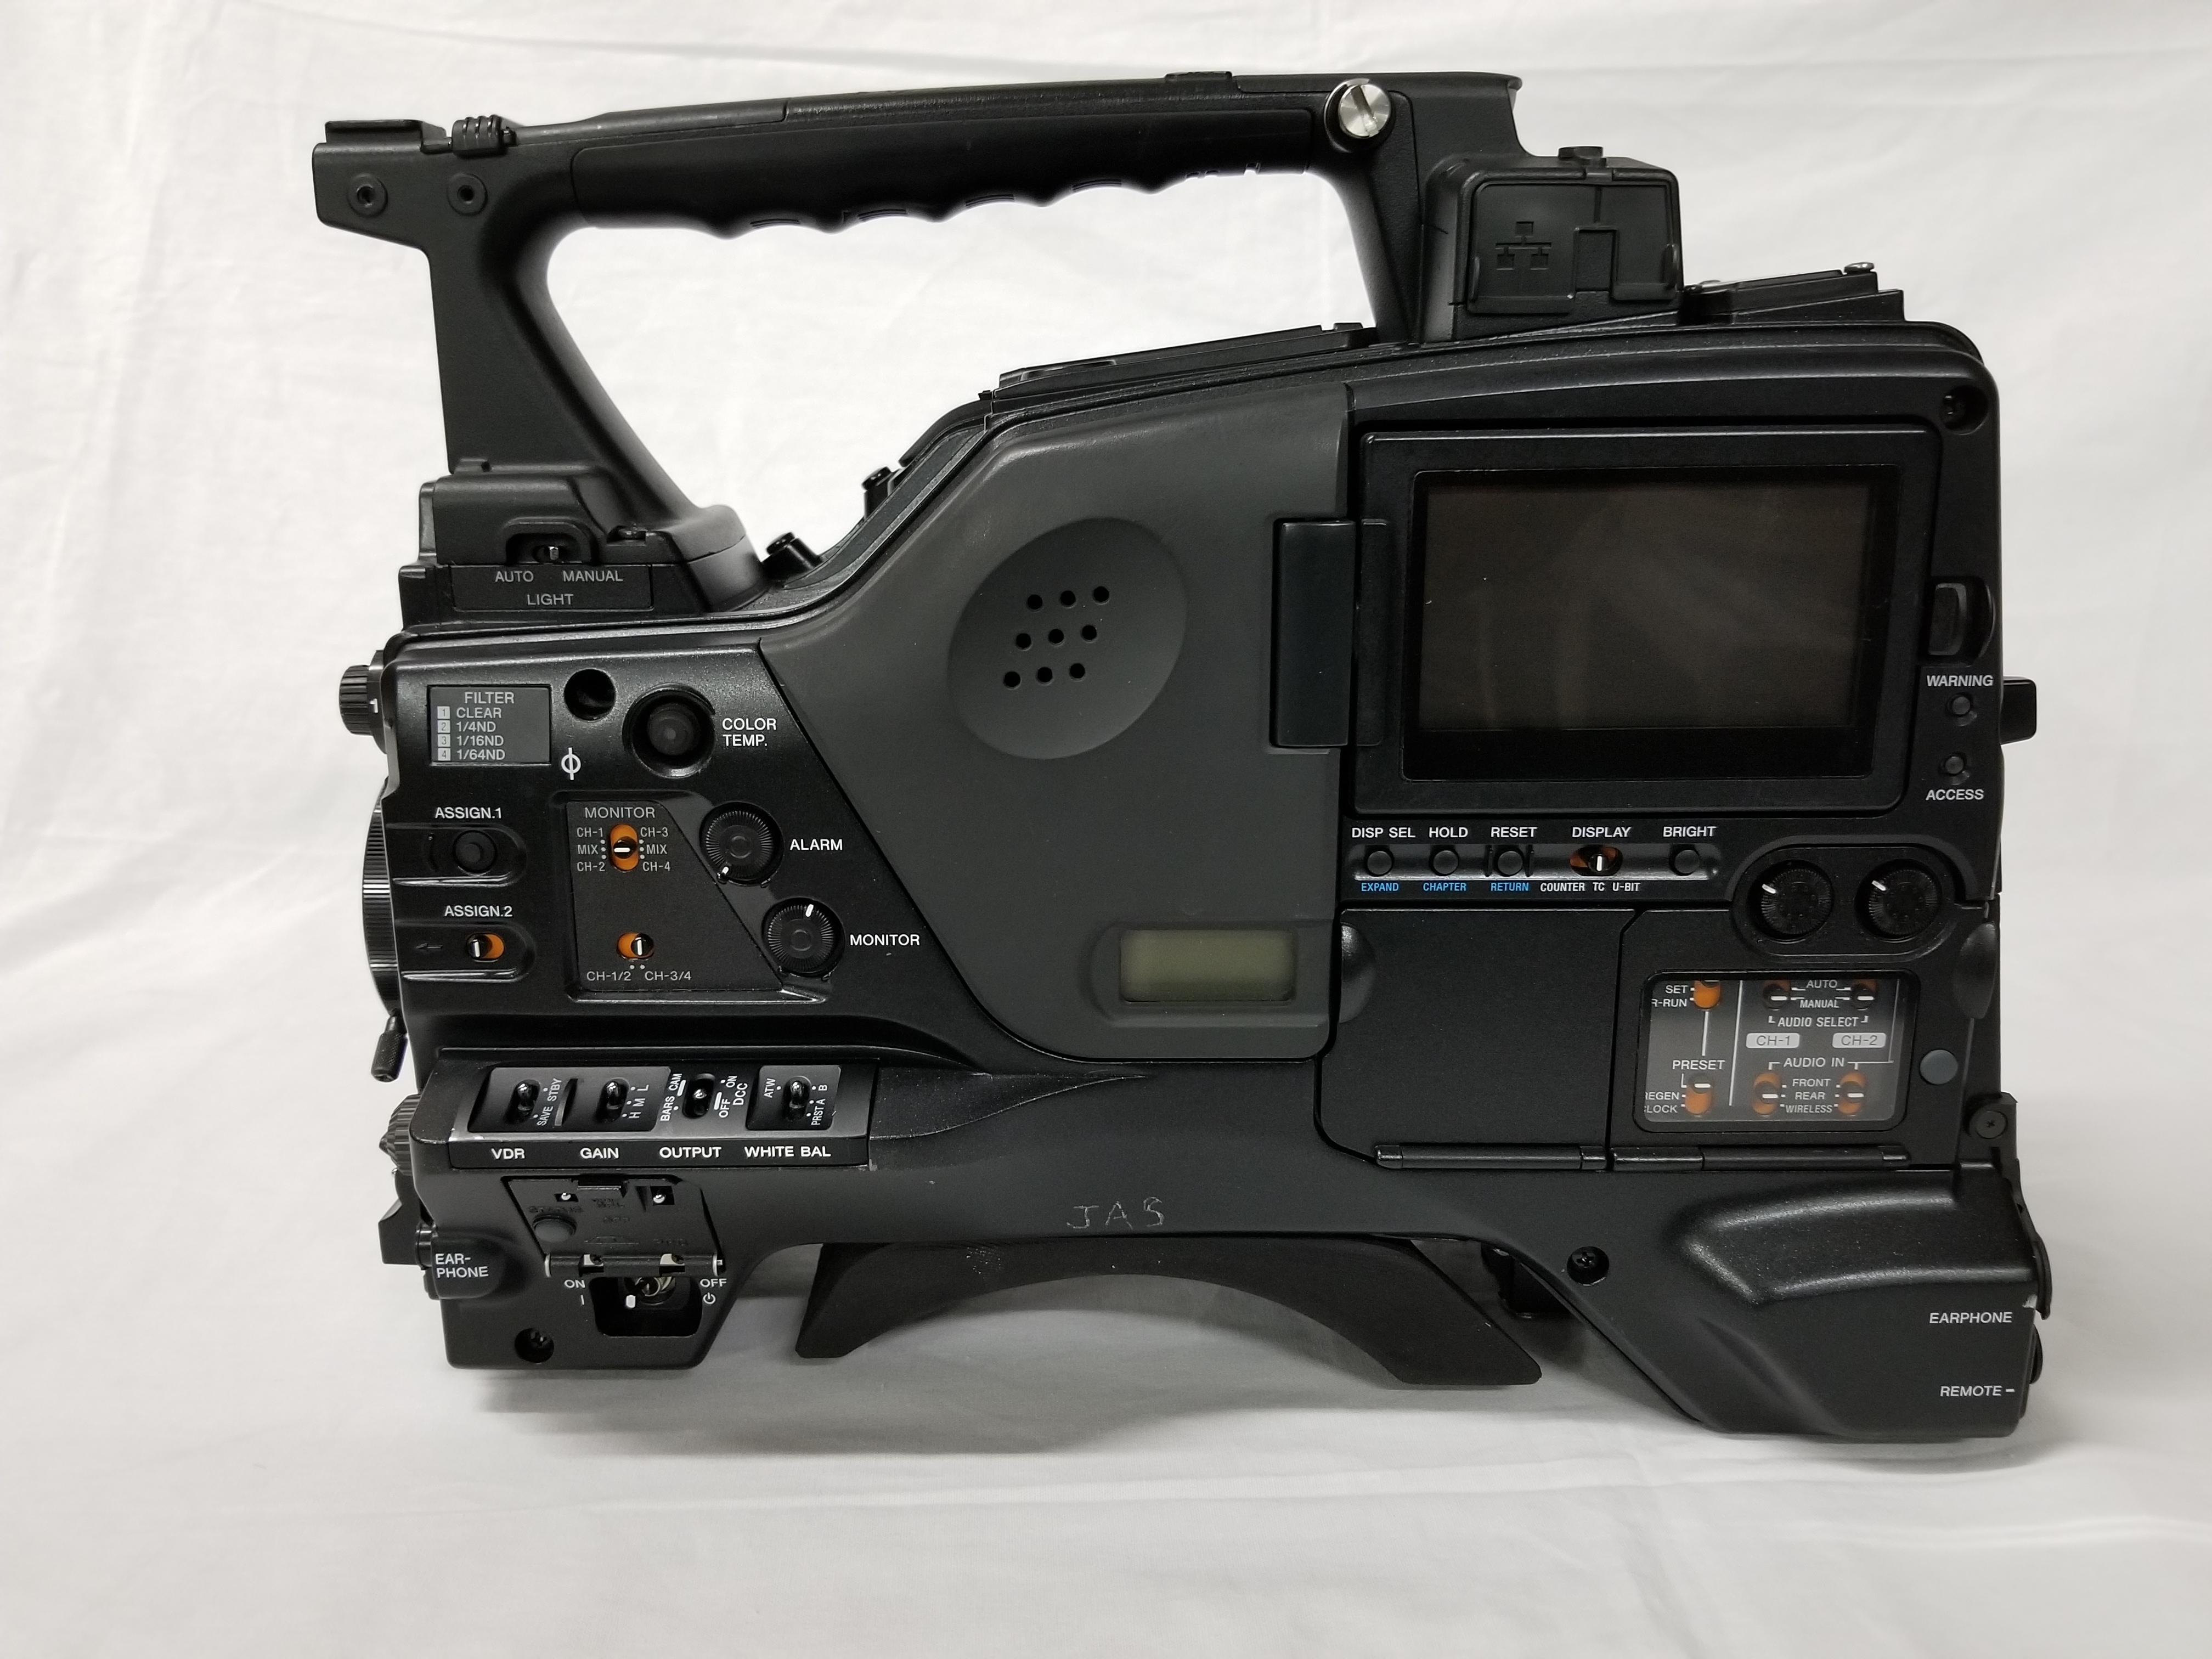 sony pdw700 xdcam hd camcorder allied broadcast group rh alliedbroadcastgroup com sony pdw 700 manual pdf sony pdw-700 maintenance manual